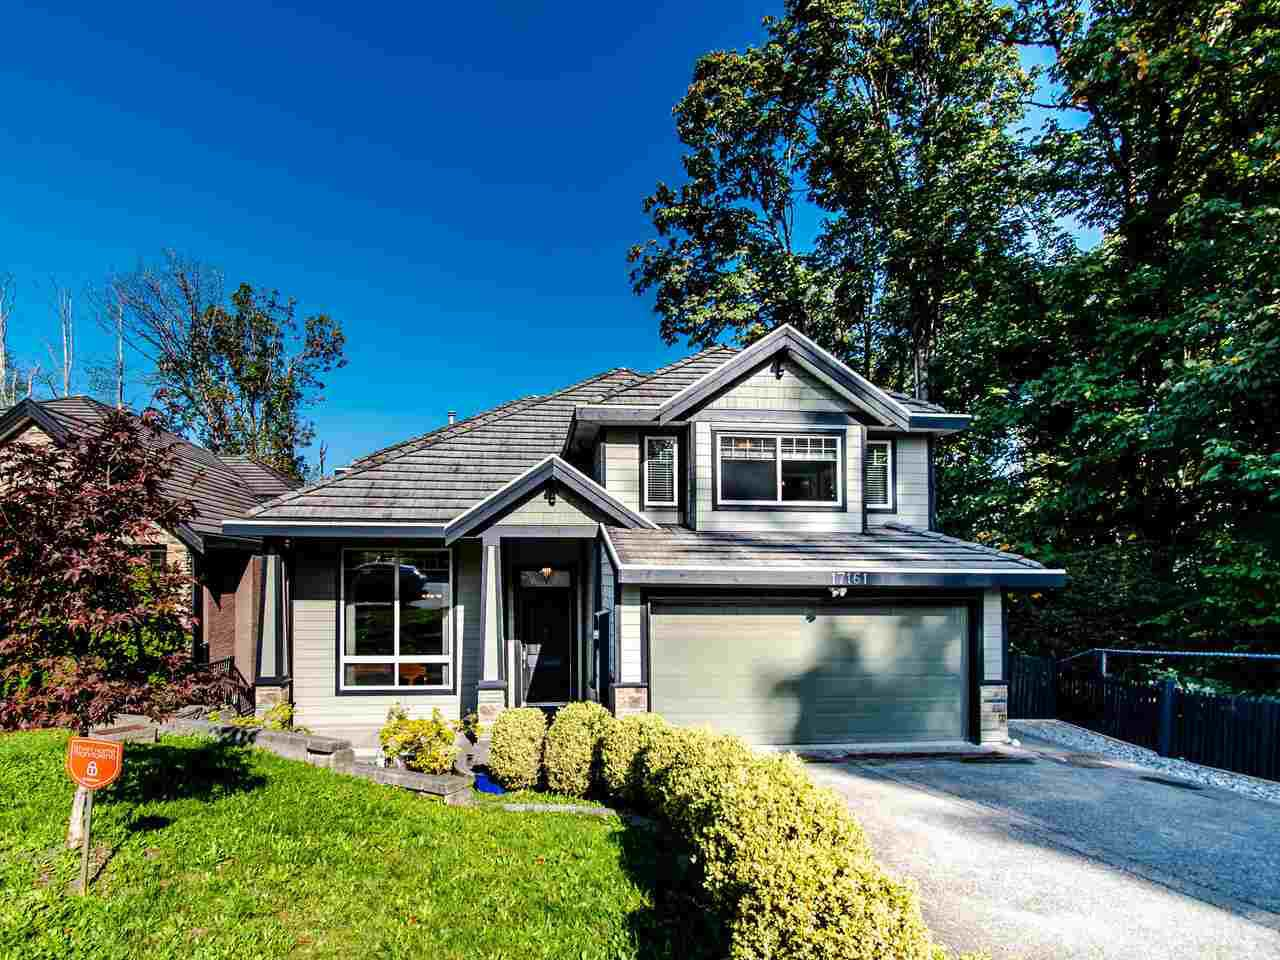 Main Photo: 17161 104A Avenue in Surrey: Fraser Heights House for sale (North Surrey)  : MLS®# R2508925